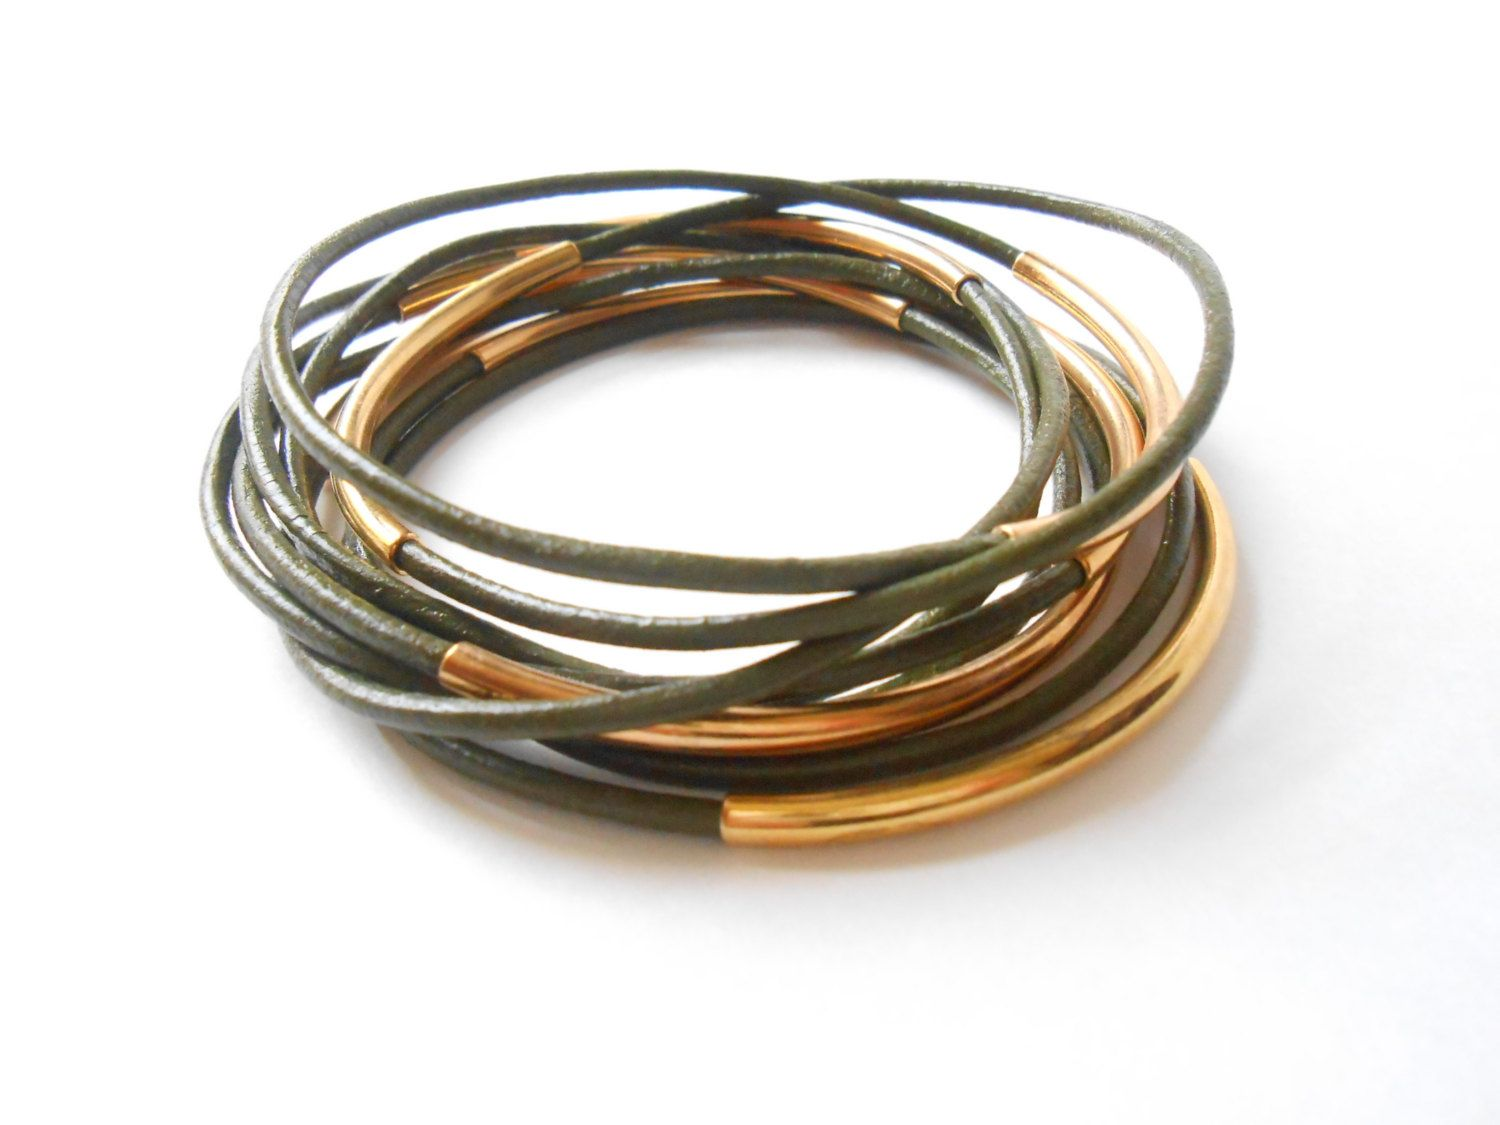 Leather jewelry bangle stack bracelets with gold tube leather